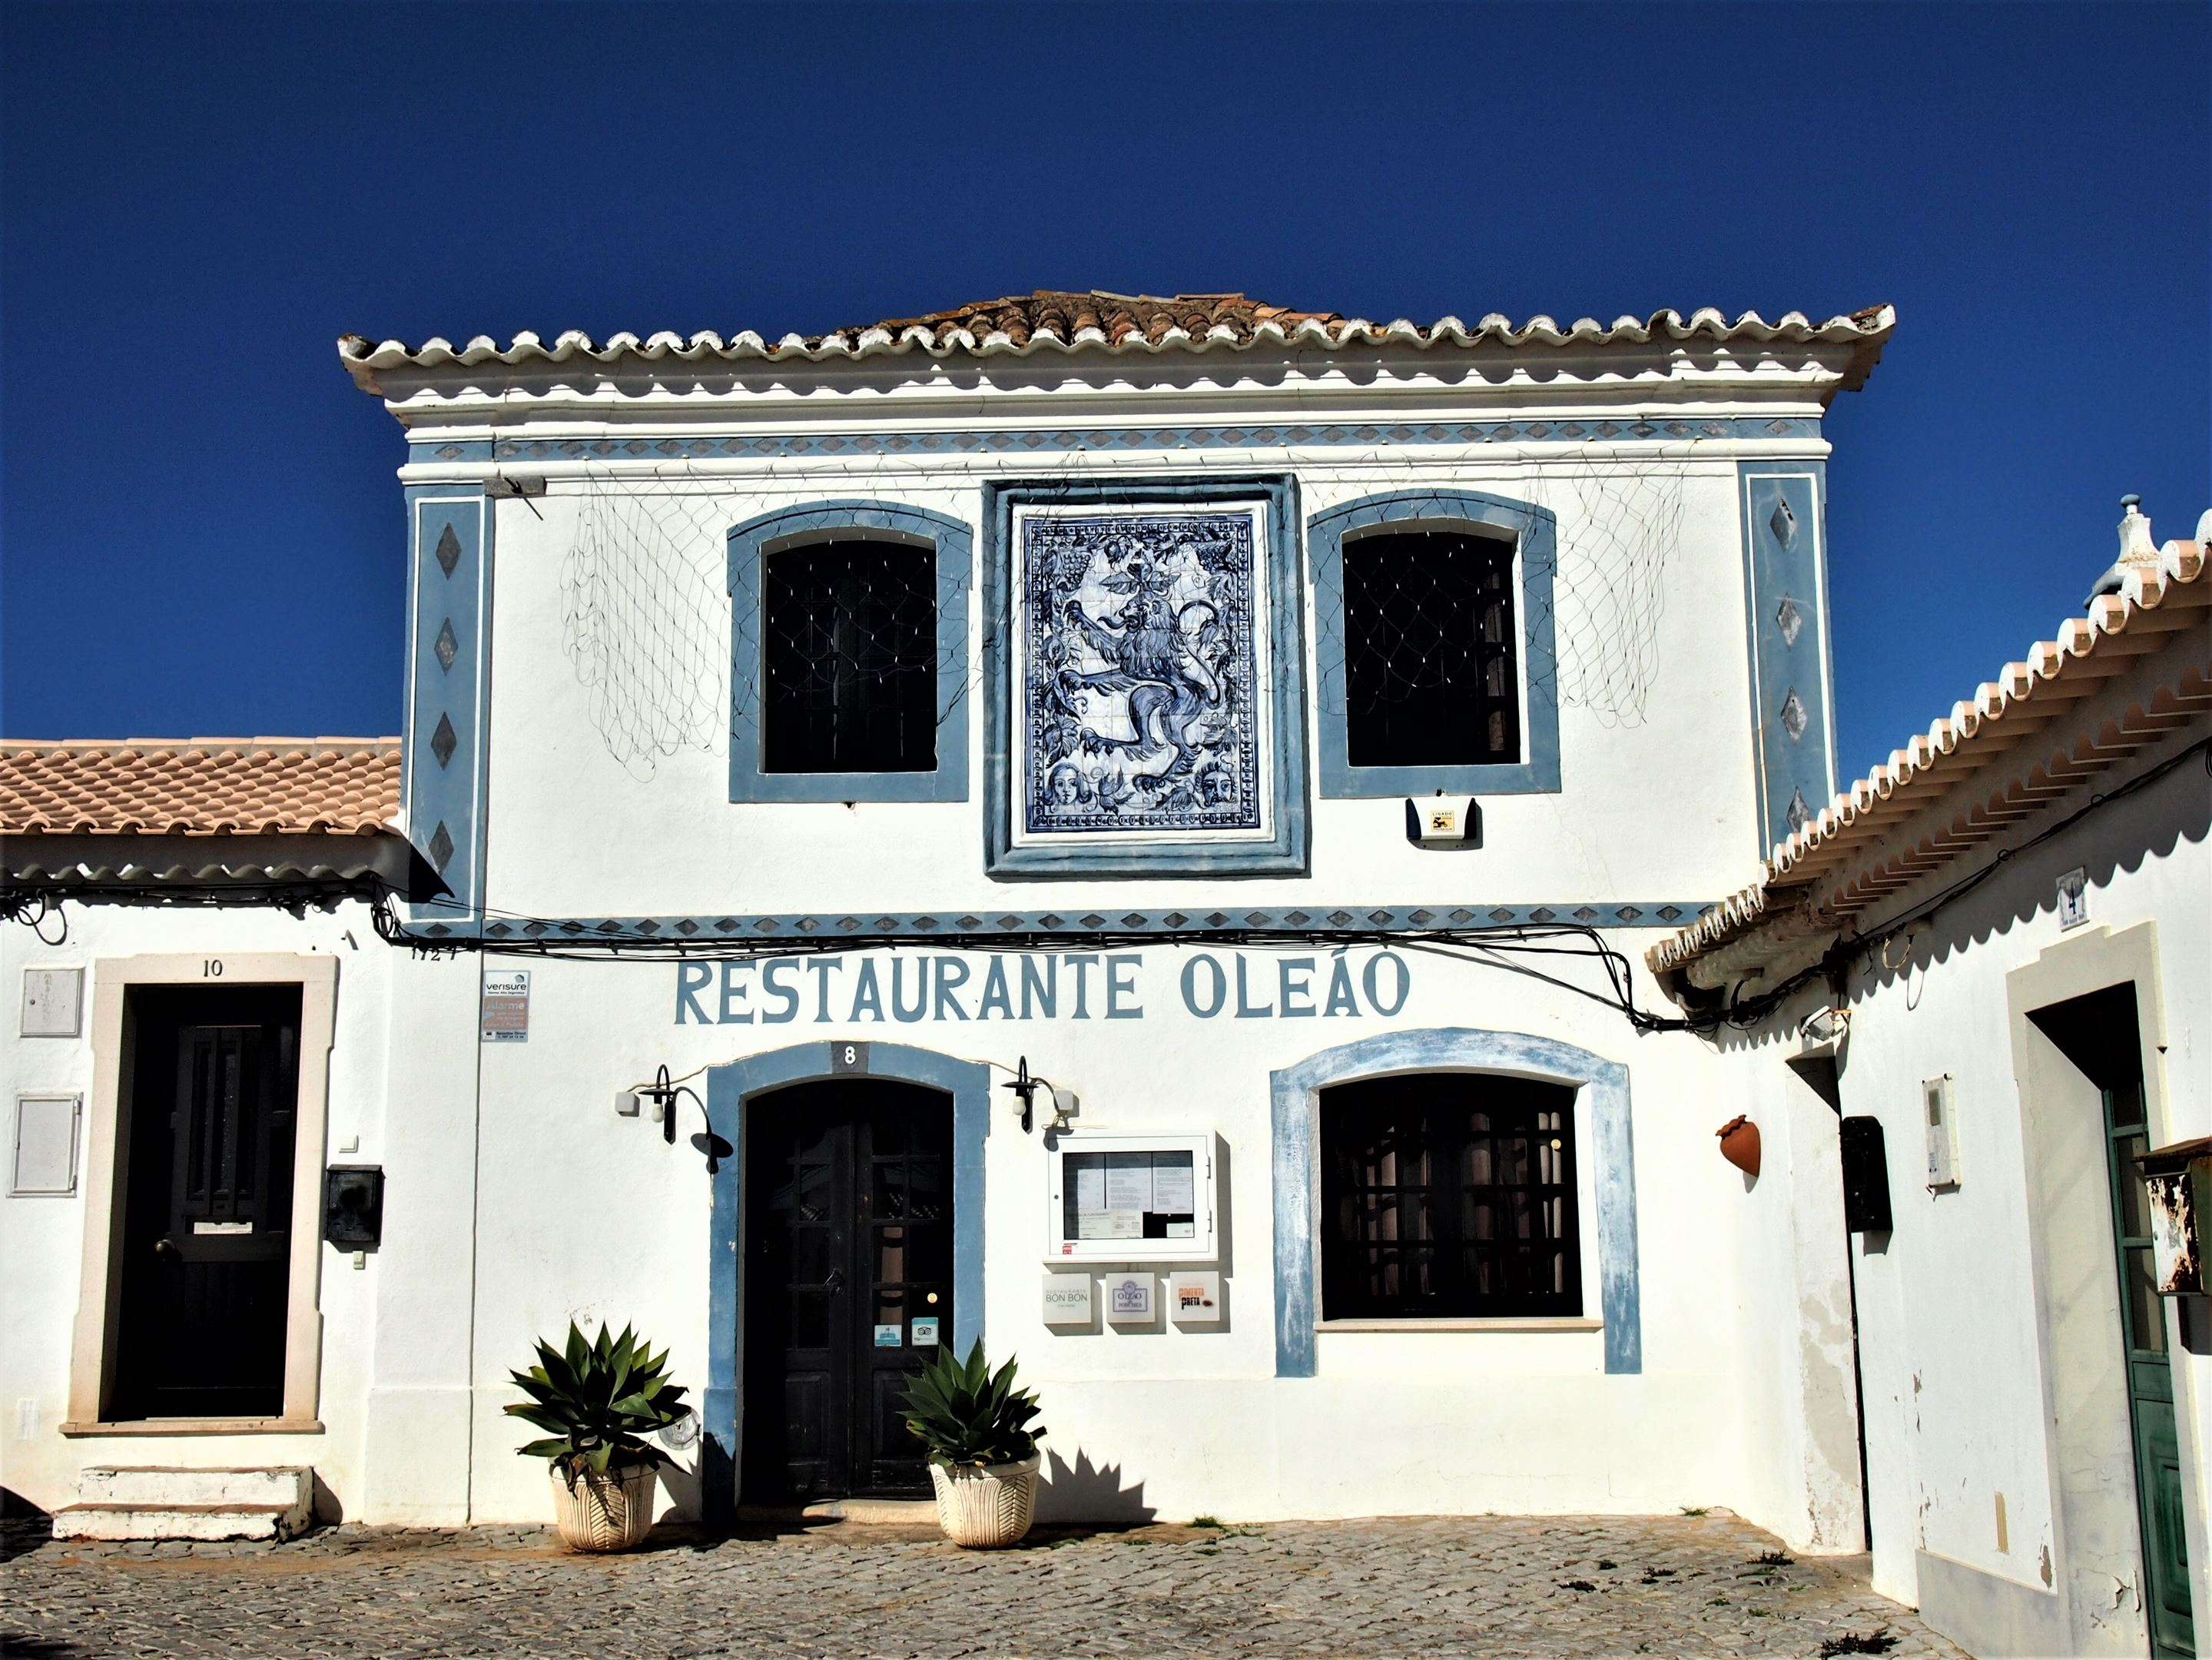 Restaurante O Leão de Porches, Algarve